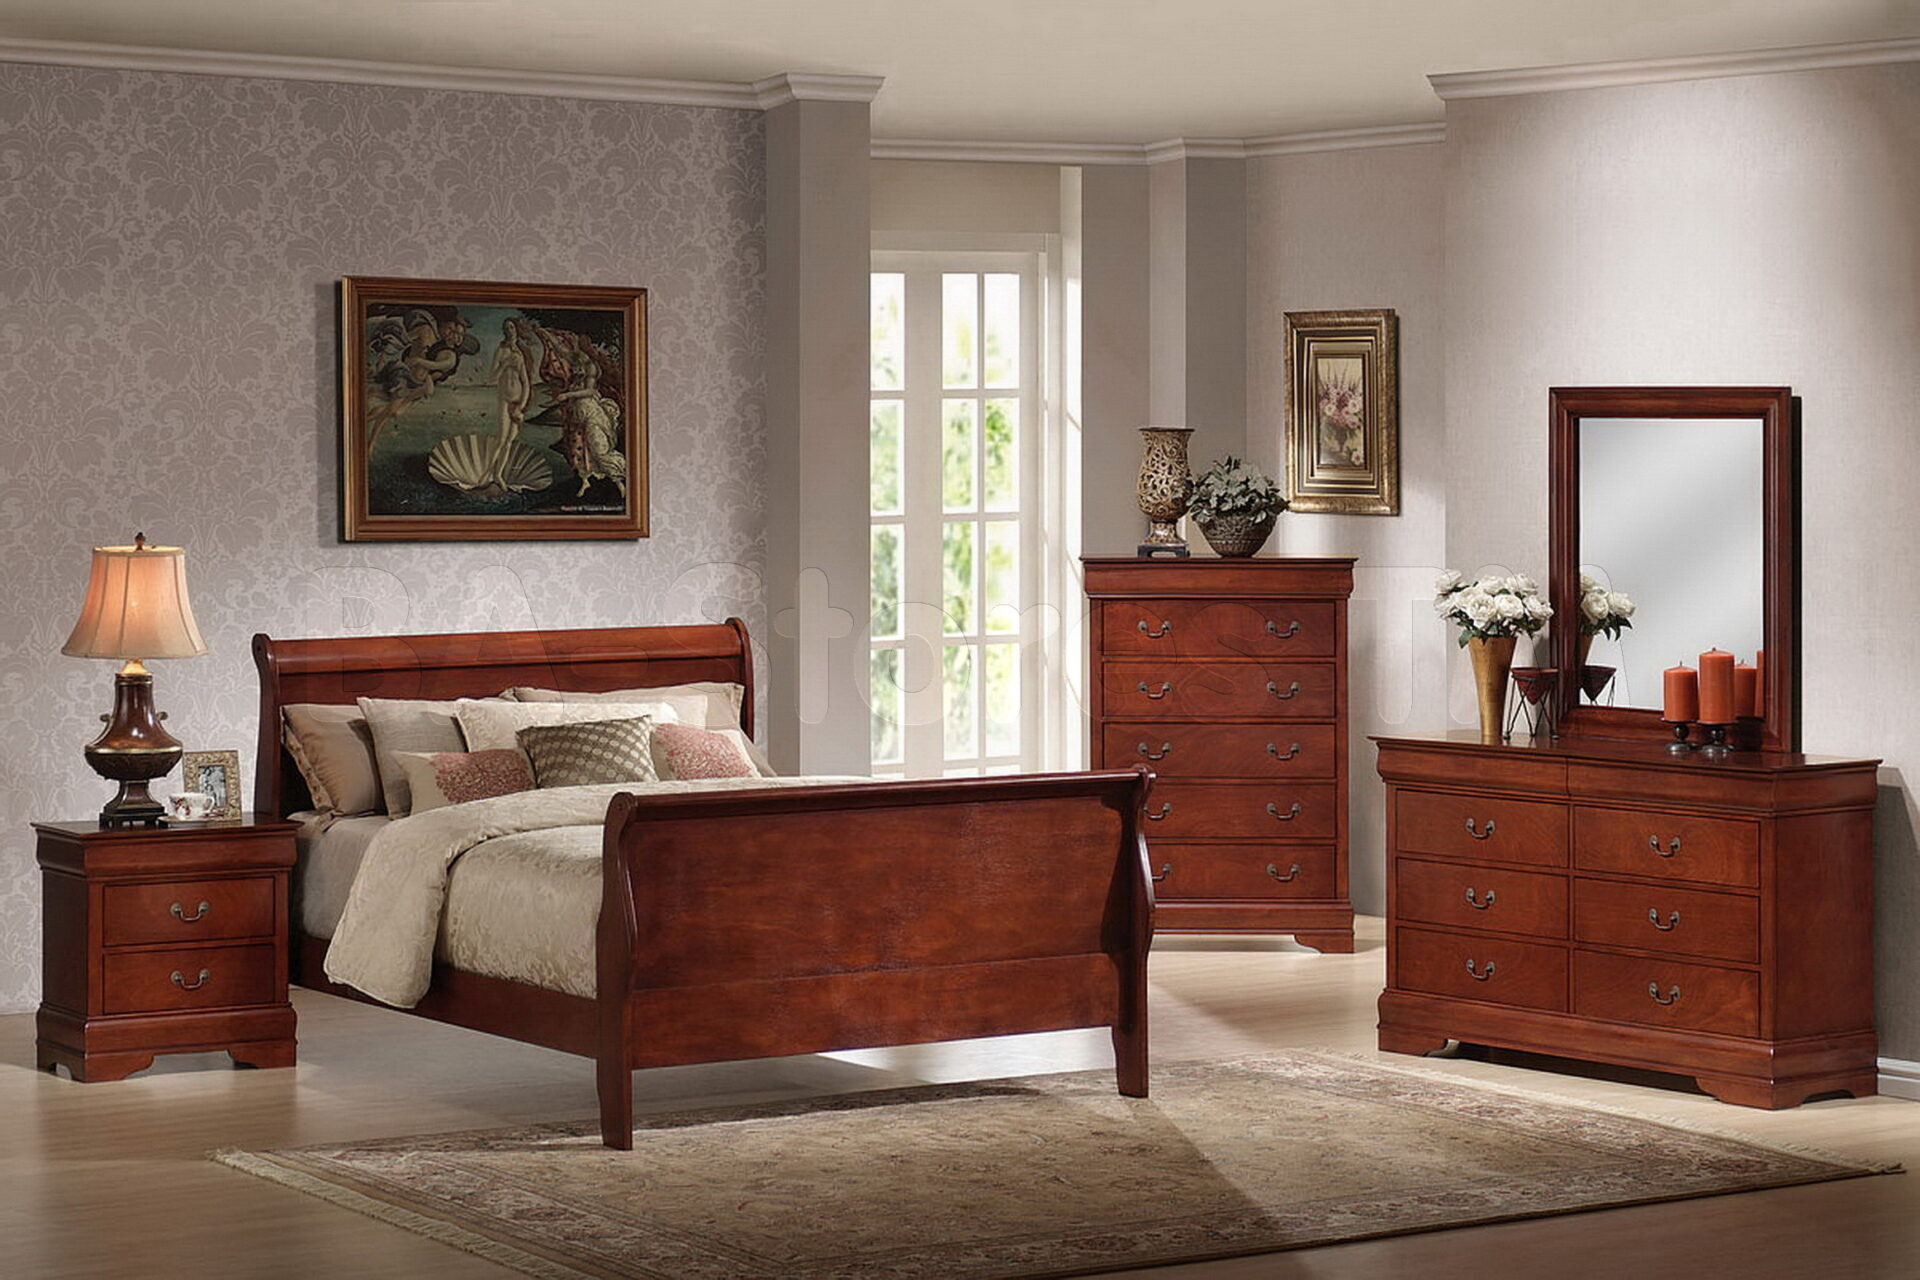 Cherry wood furniture bedroom decor ideas archives for Bedroom furniture decor ideas